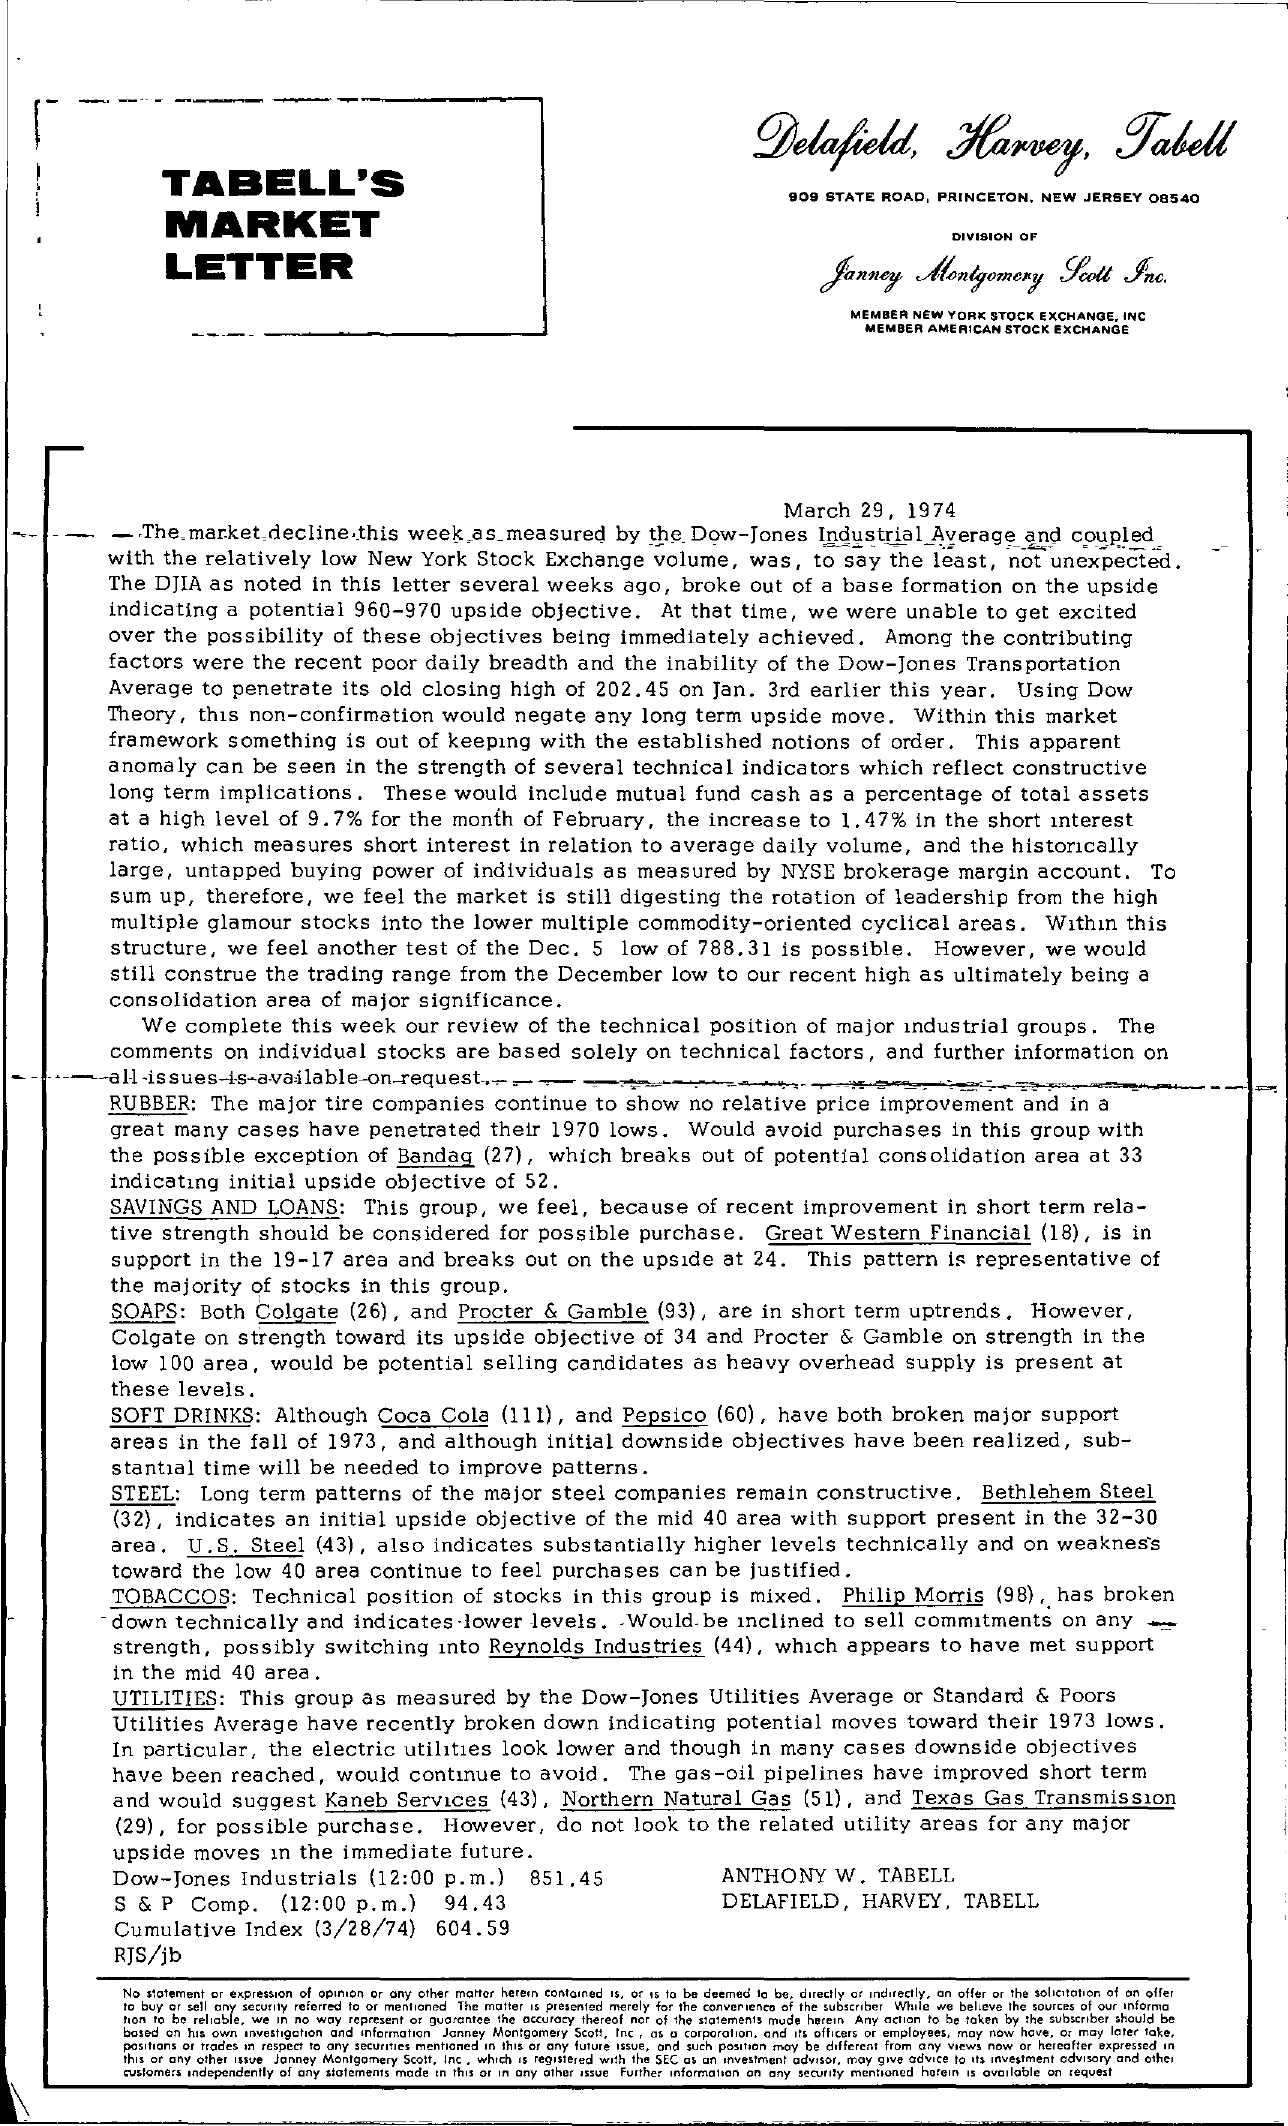 Tabell's Market Letter - March 29, 1974